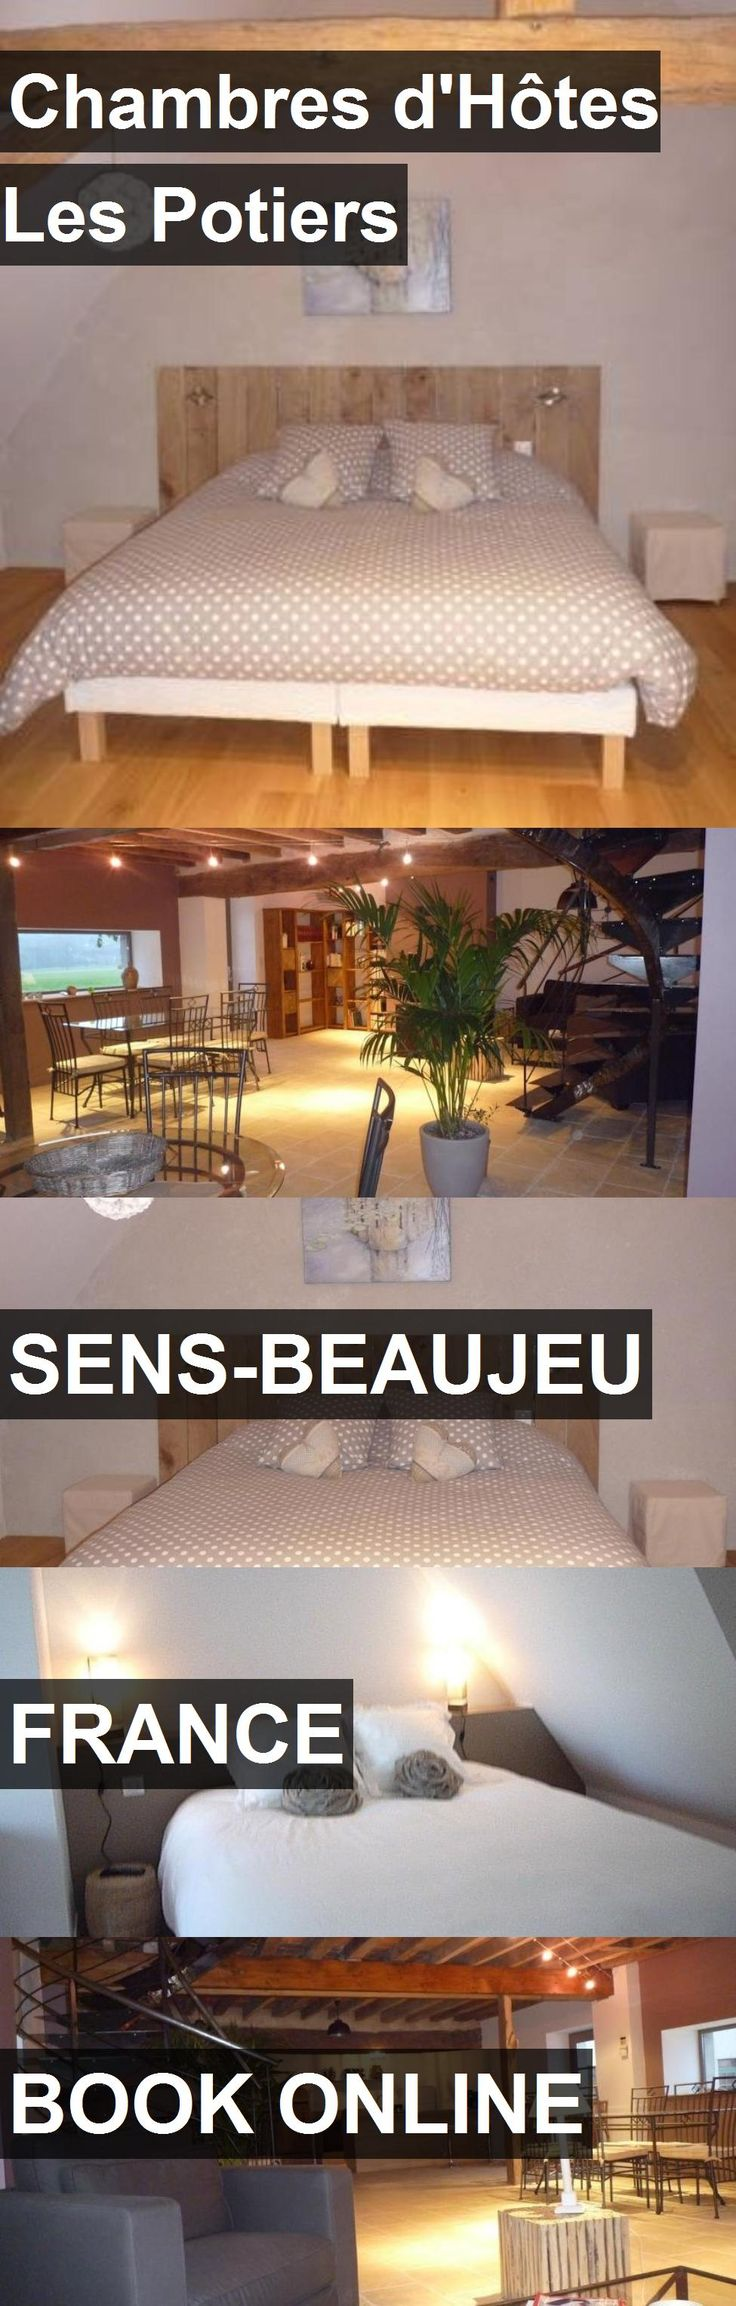 Hotel Chambres d'Hôtes Les Potiers in Sens-Beaujeu, France. For more information, photos, reviews and best prices please follow the link. #France #Sens-Beaujeu #hotel #travel #vacation